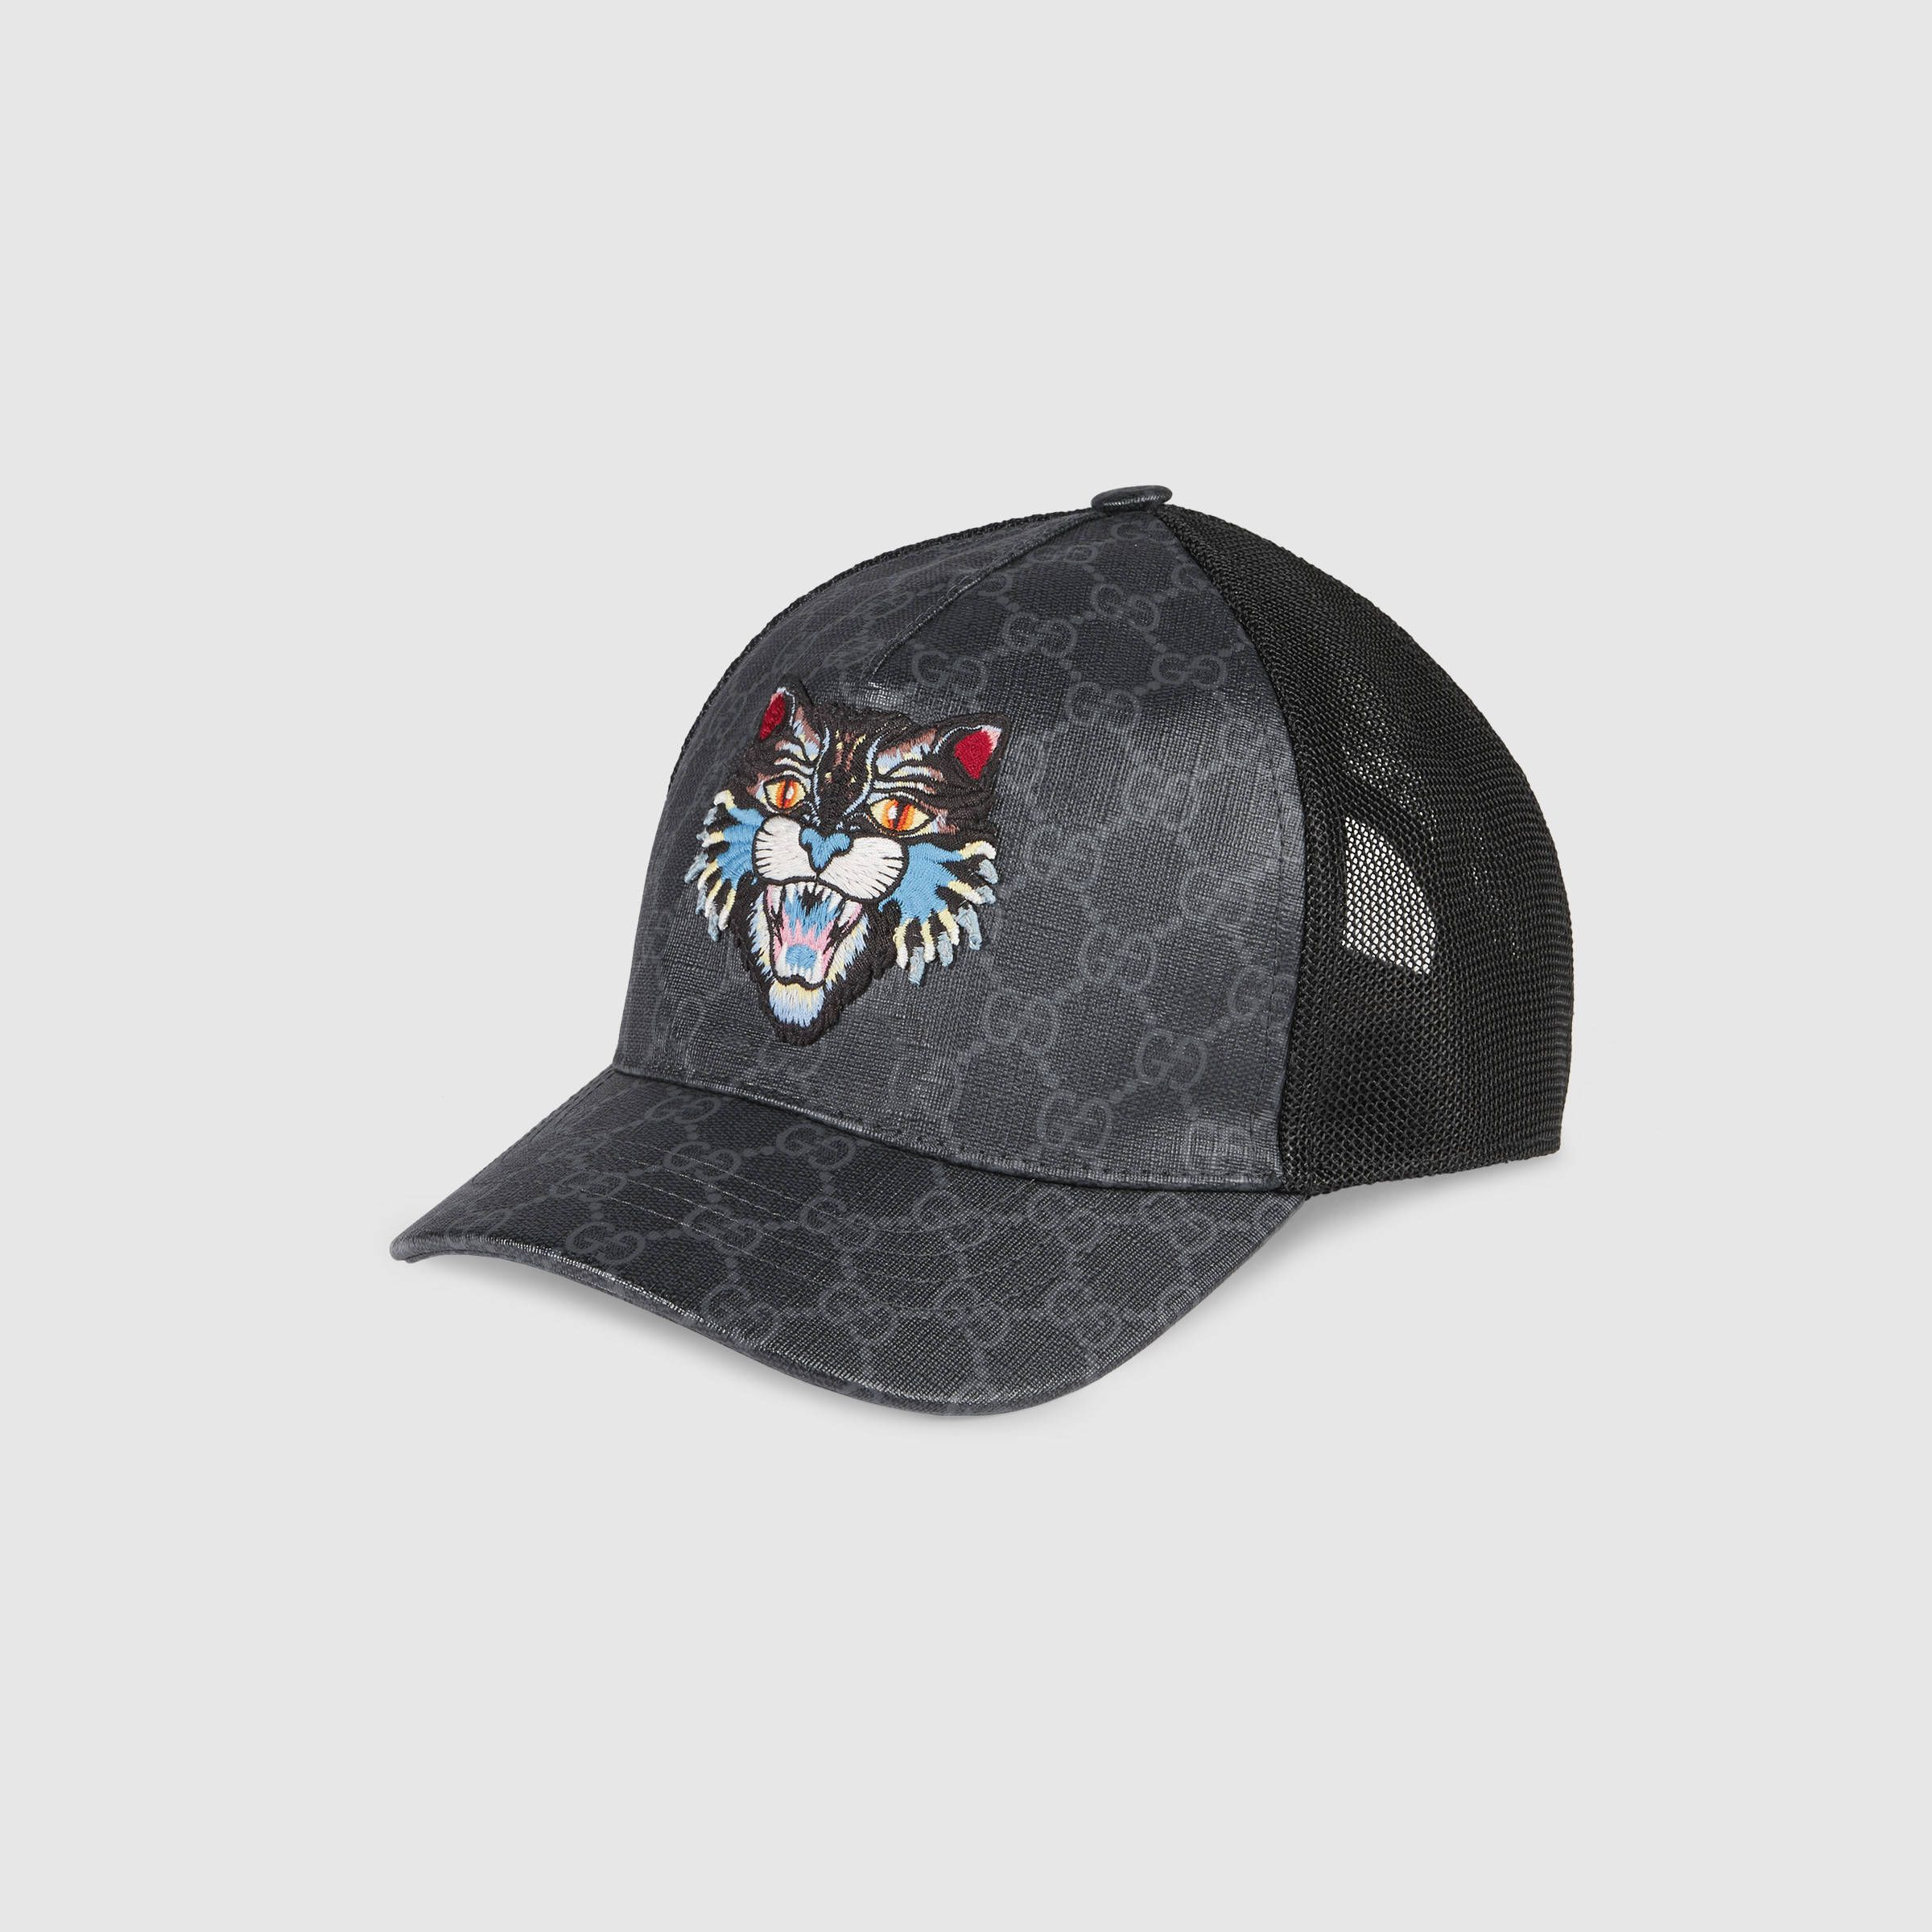 5f4527dfa9cee9 Gucci GG Supreme baseball hat with Angry Cat Detail 2 $440 ...